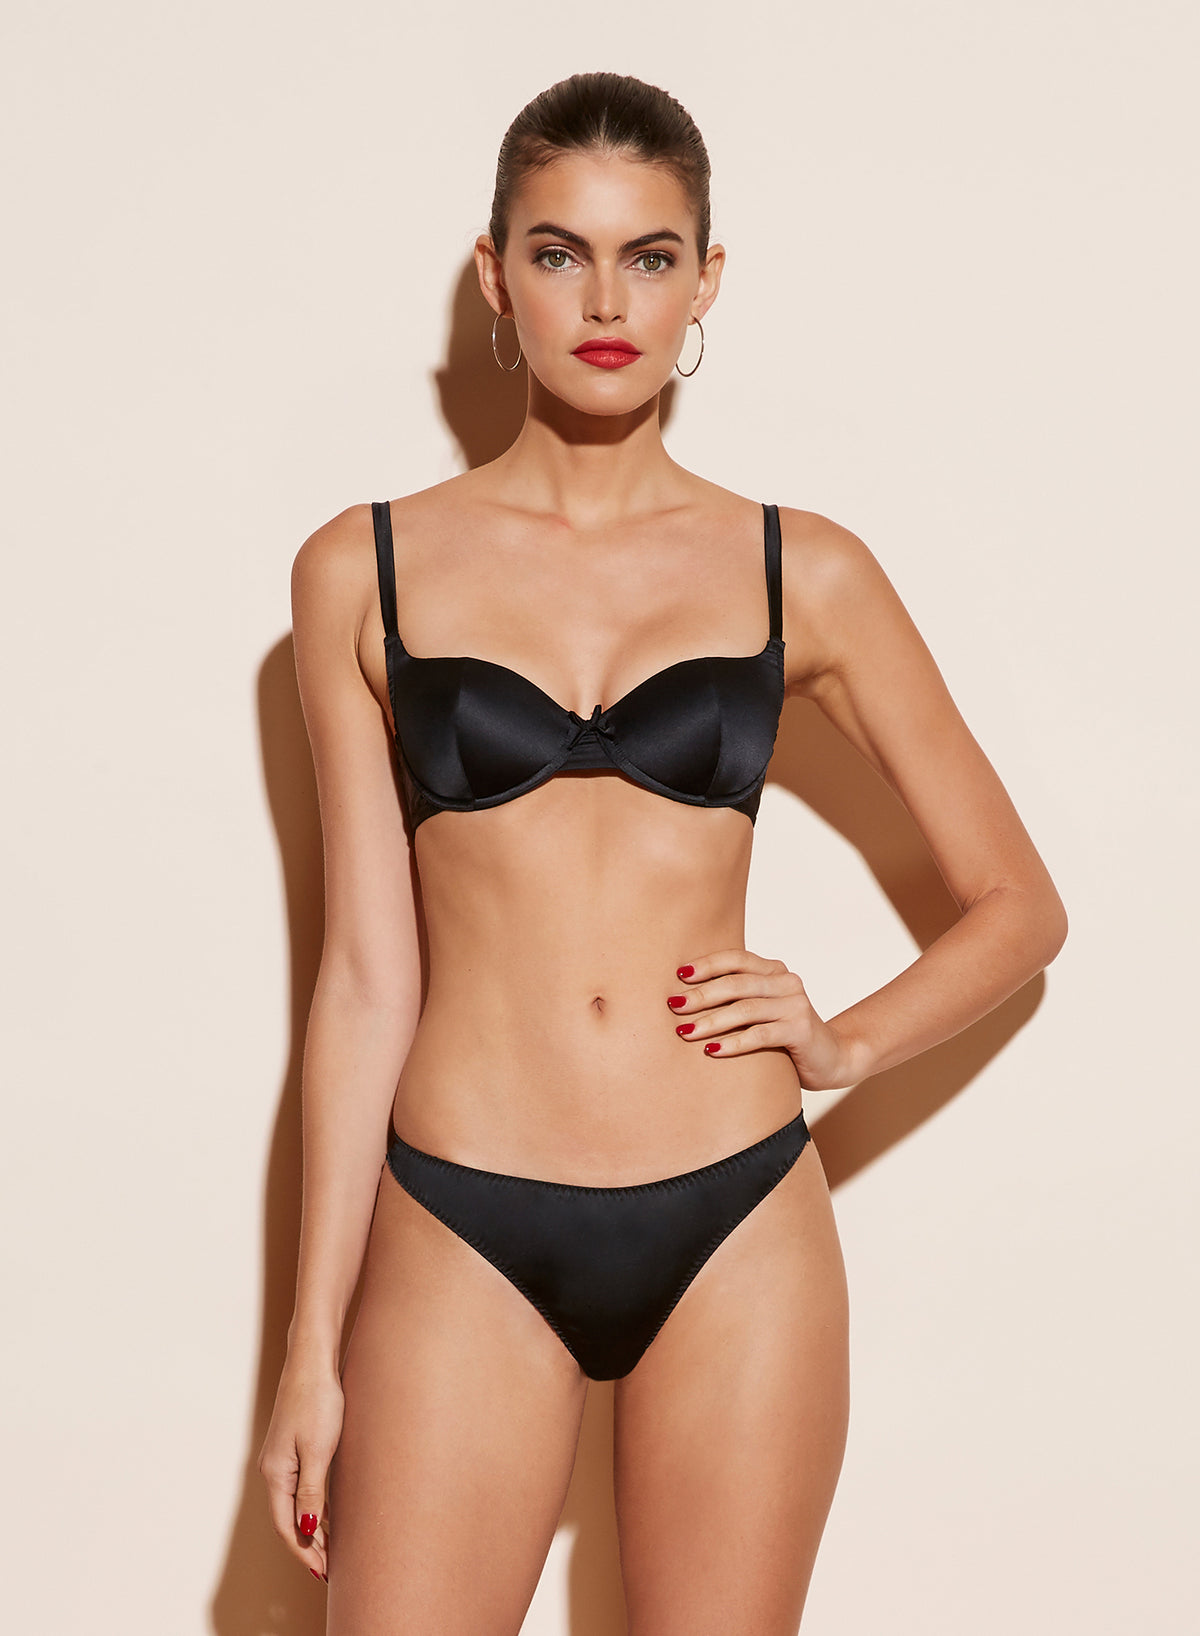 Satin Scooped Balconette Bra